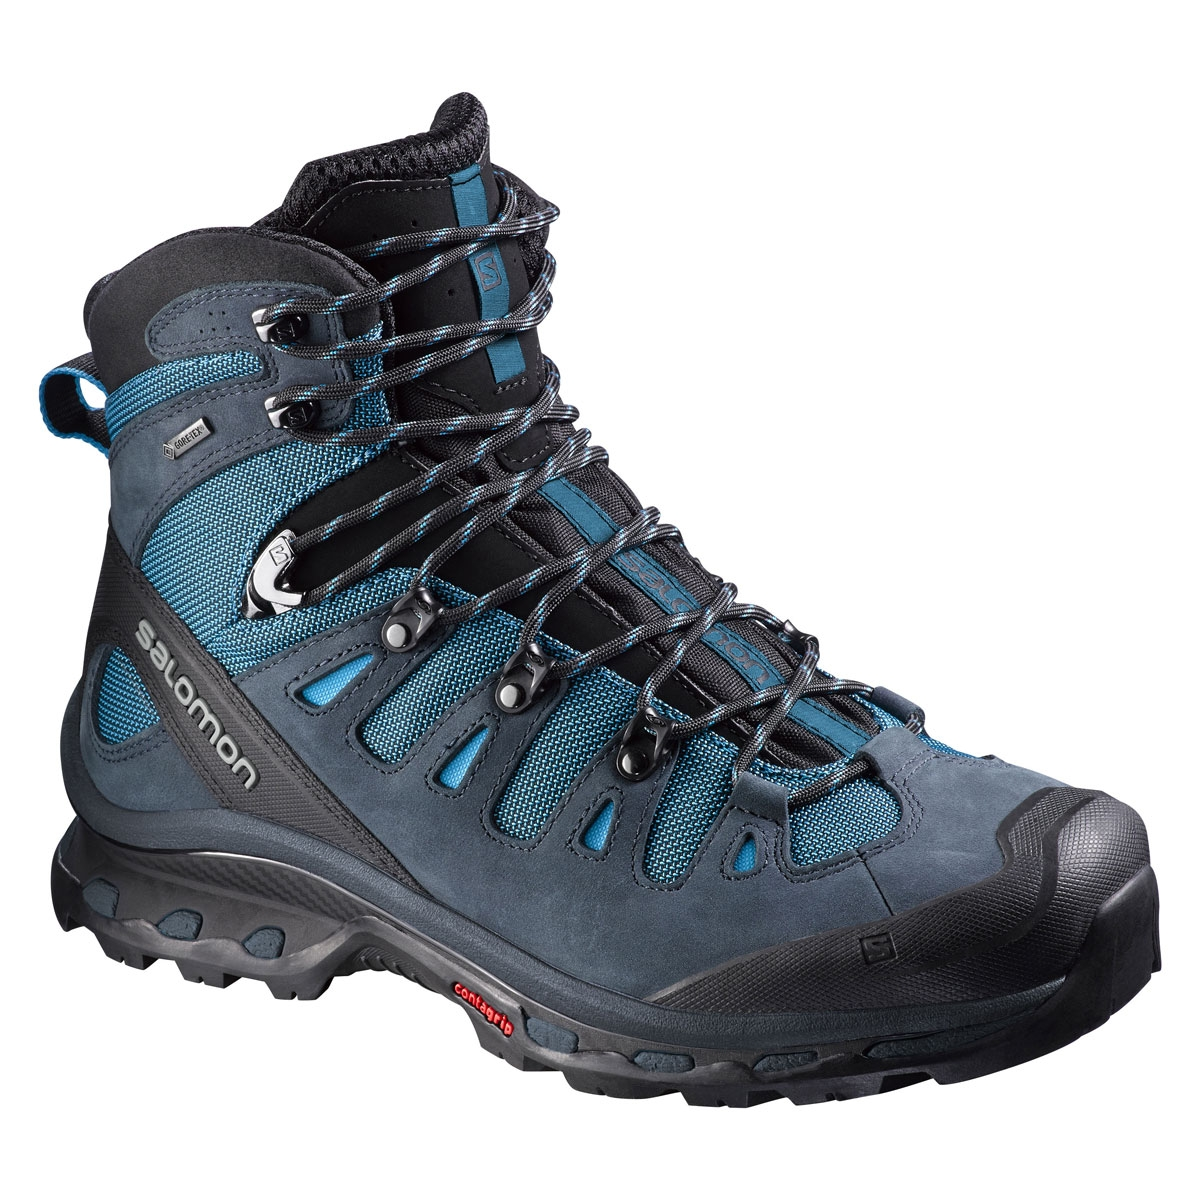 e30d4cbc13c95 Salomon Quest 4D 2 GTX Walking Boots (Men s) - Fog Blue   Deep Blue ...